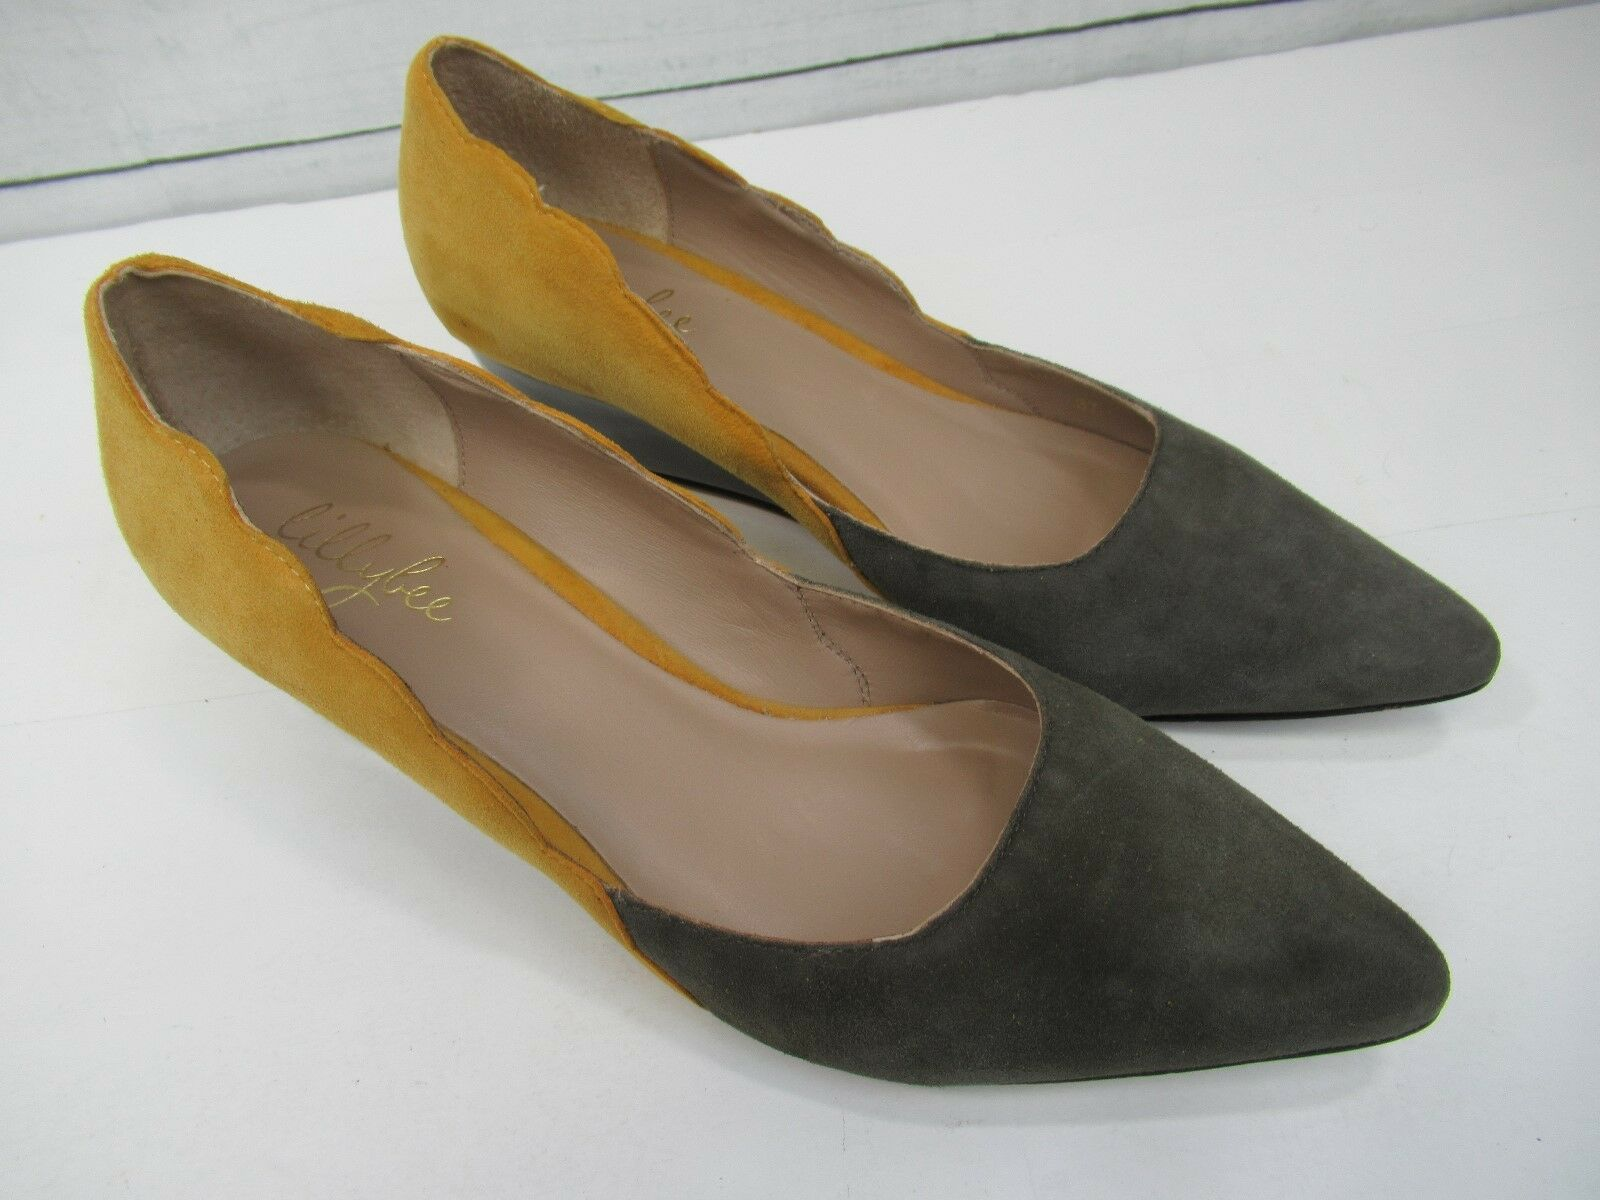 Lillybee Gillian in Two Tone Suede Wedge shoes Made In Brazil Size 7